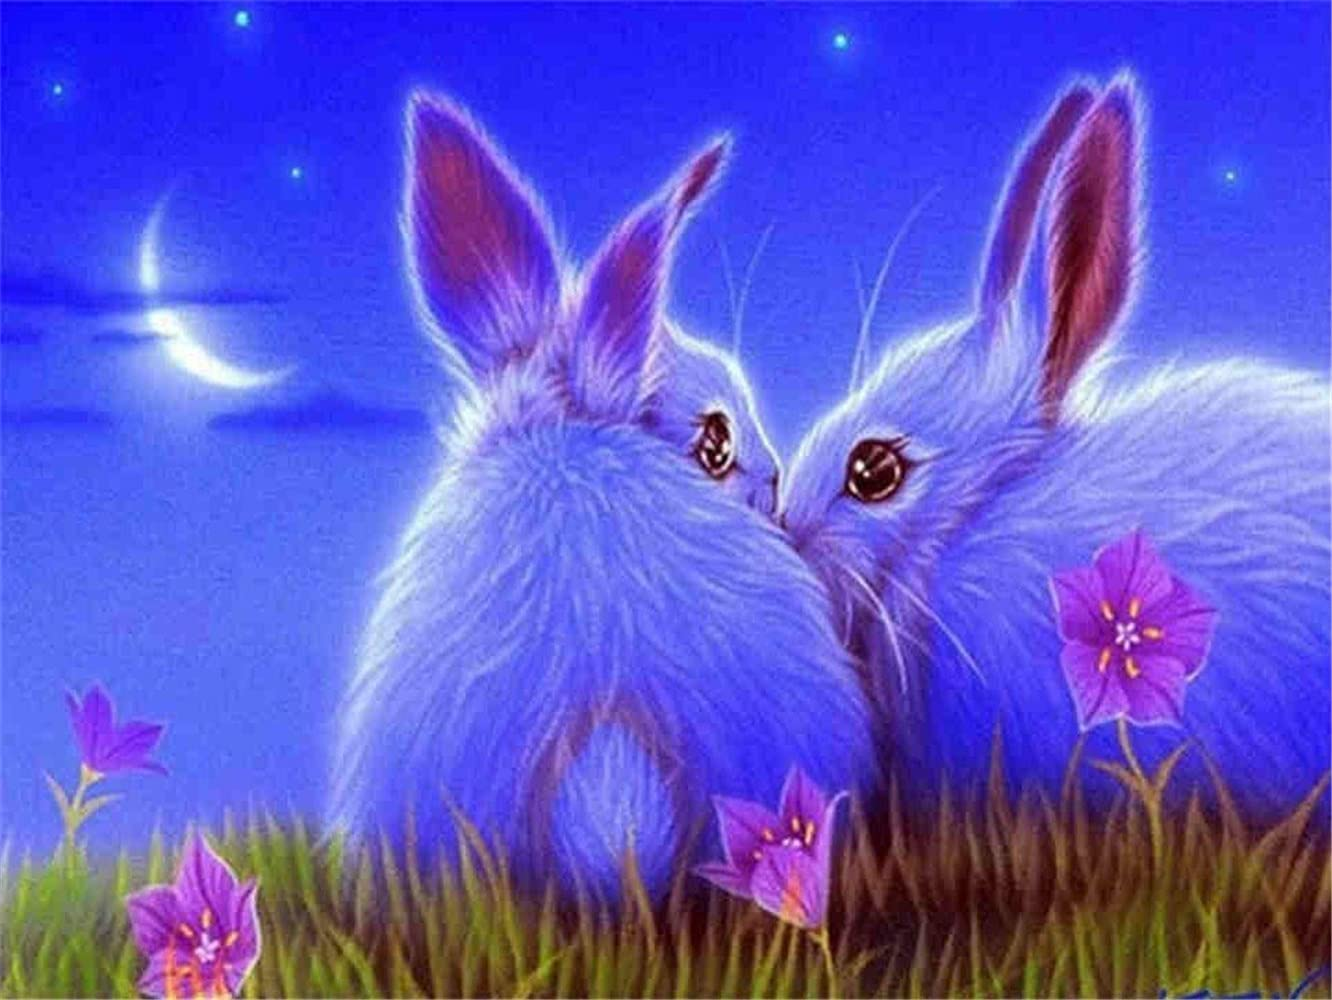 Today's only Sale WXYWYTOQ DIY 5D Diamond Painting by Cute Number Cross Kits Bunny